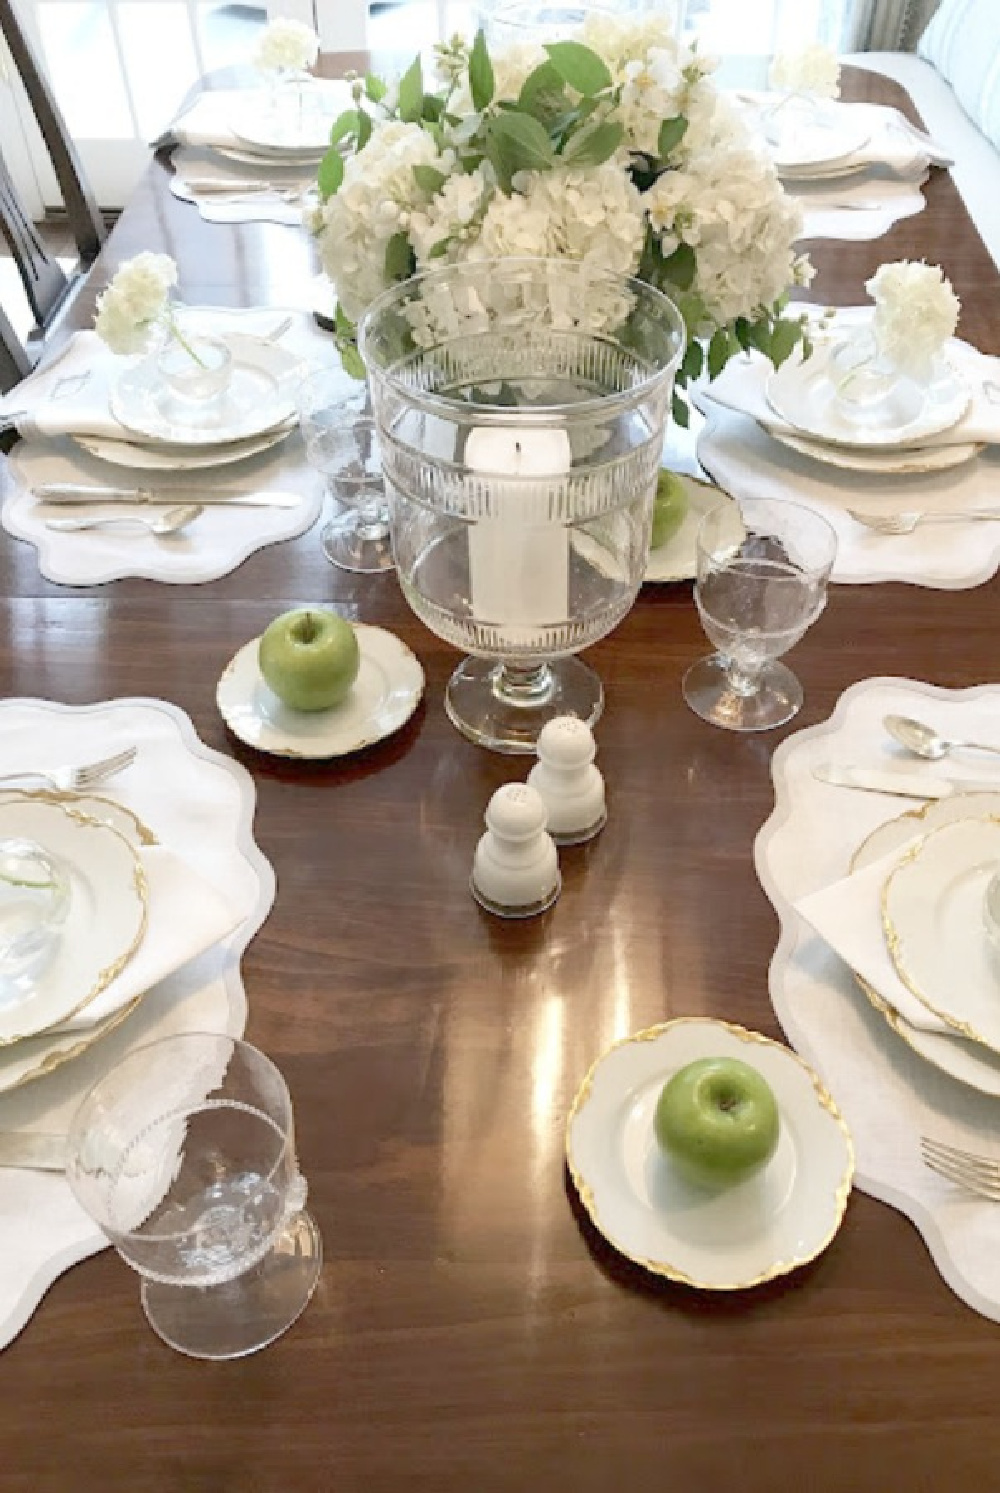 Elegant tablescape in a dining space by Lauren deLoach for the 2017 Southeastern Designer Showhouse in Atlanta. #tablescape #traditionalstyle #interiordesign